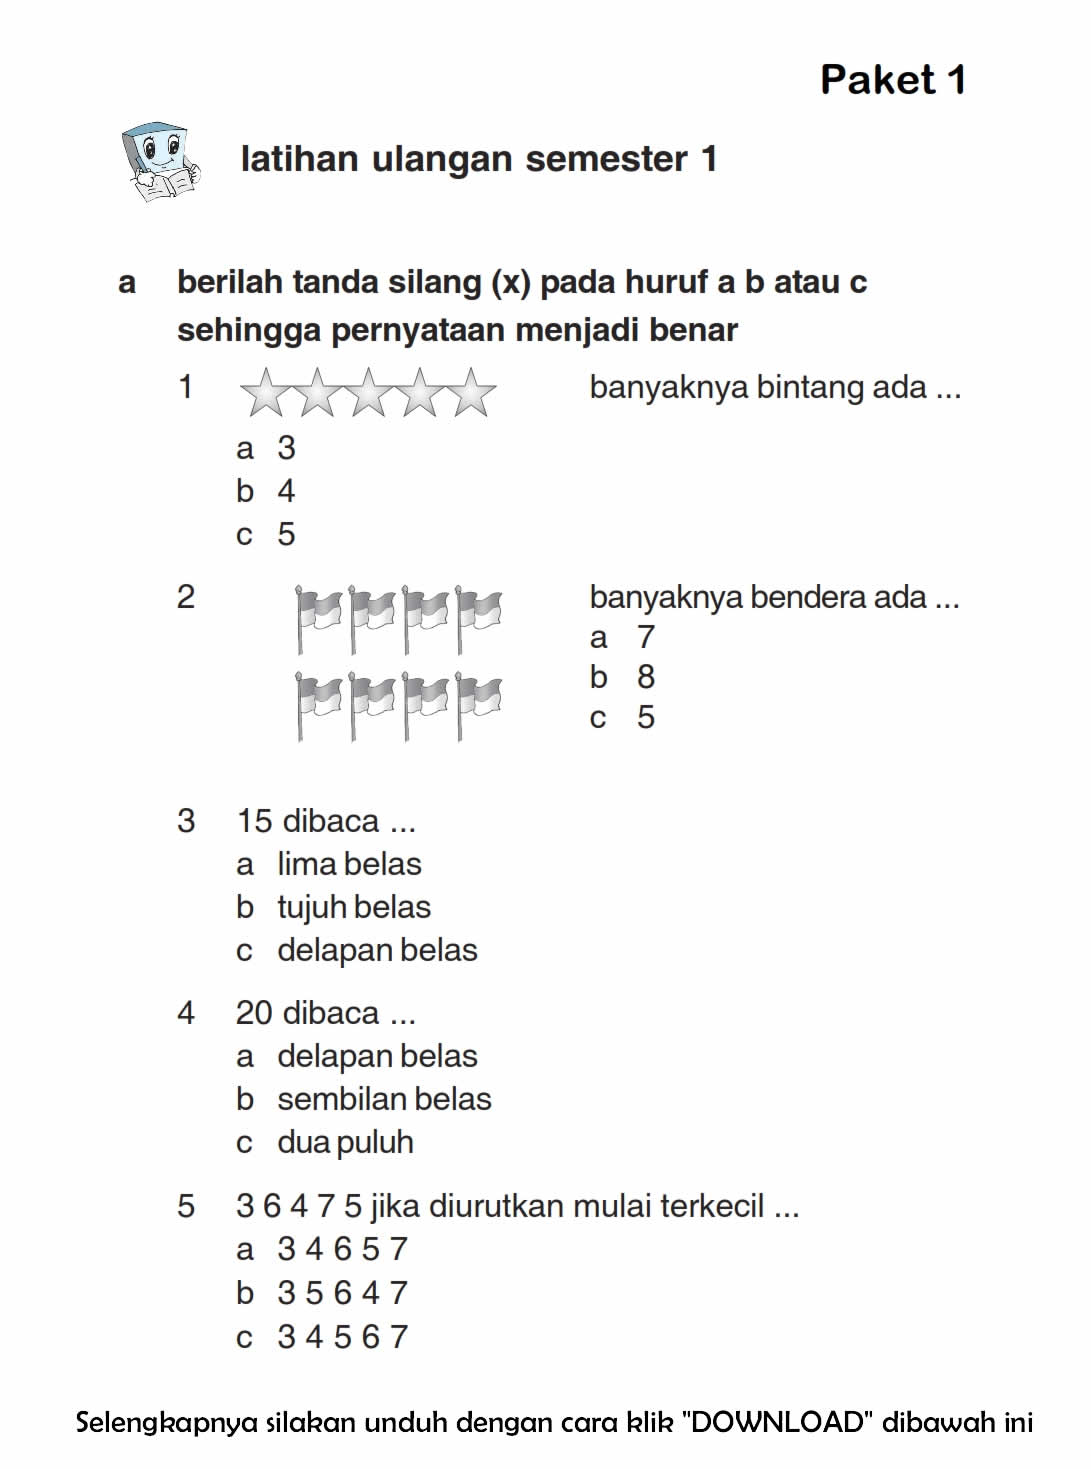 Download Soal UAS Ganjil Matematika Kelas 1 Semester 1 2015/2016 ~ Rief Awa Blog : Download